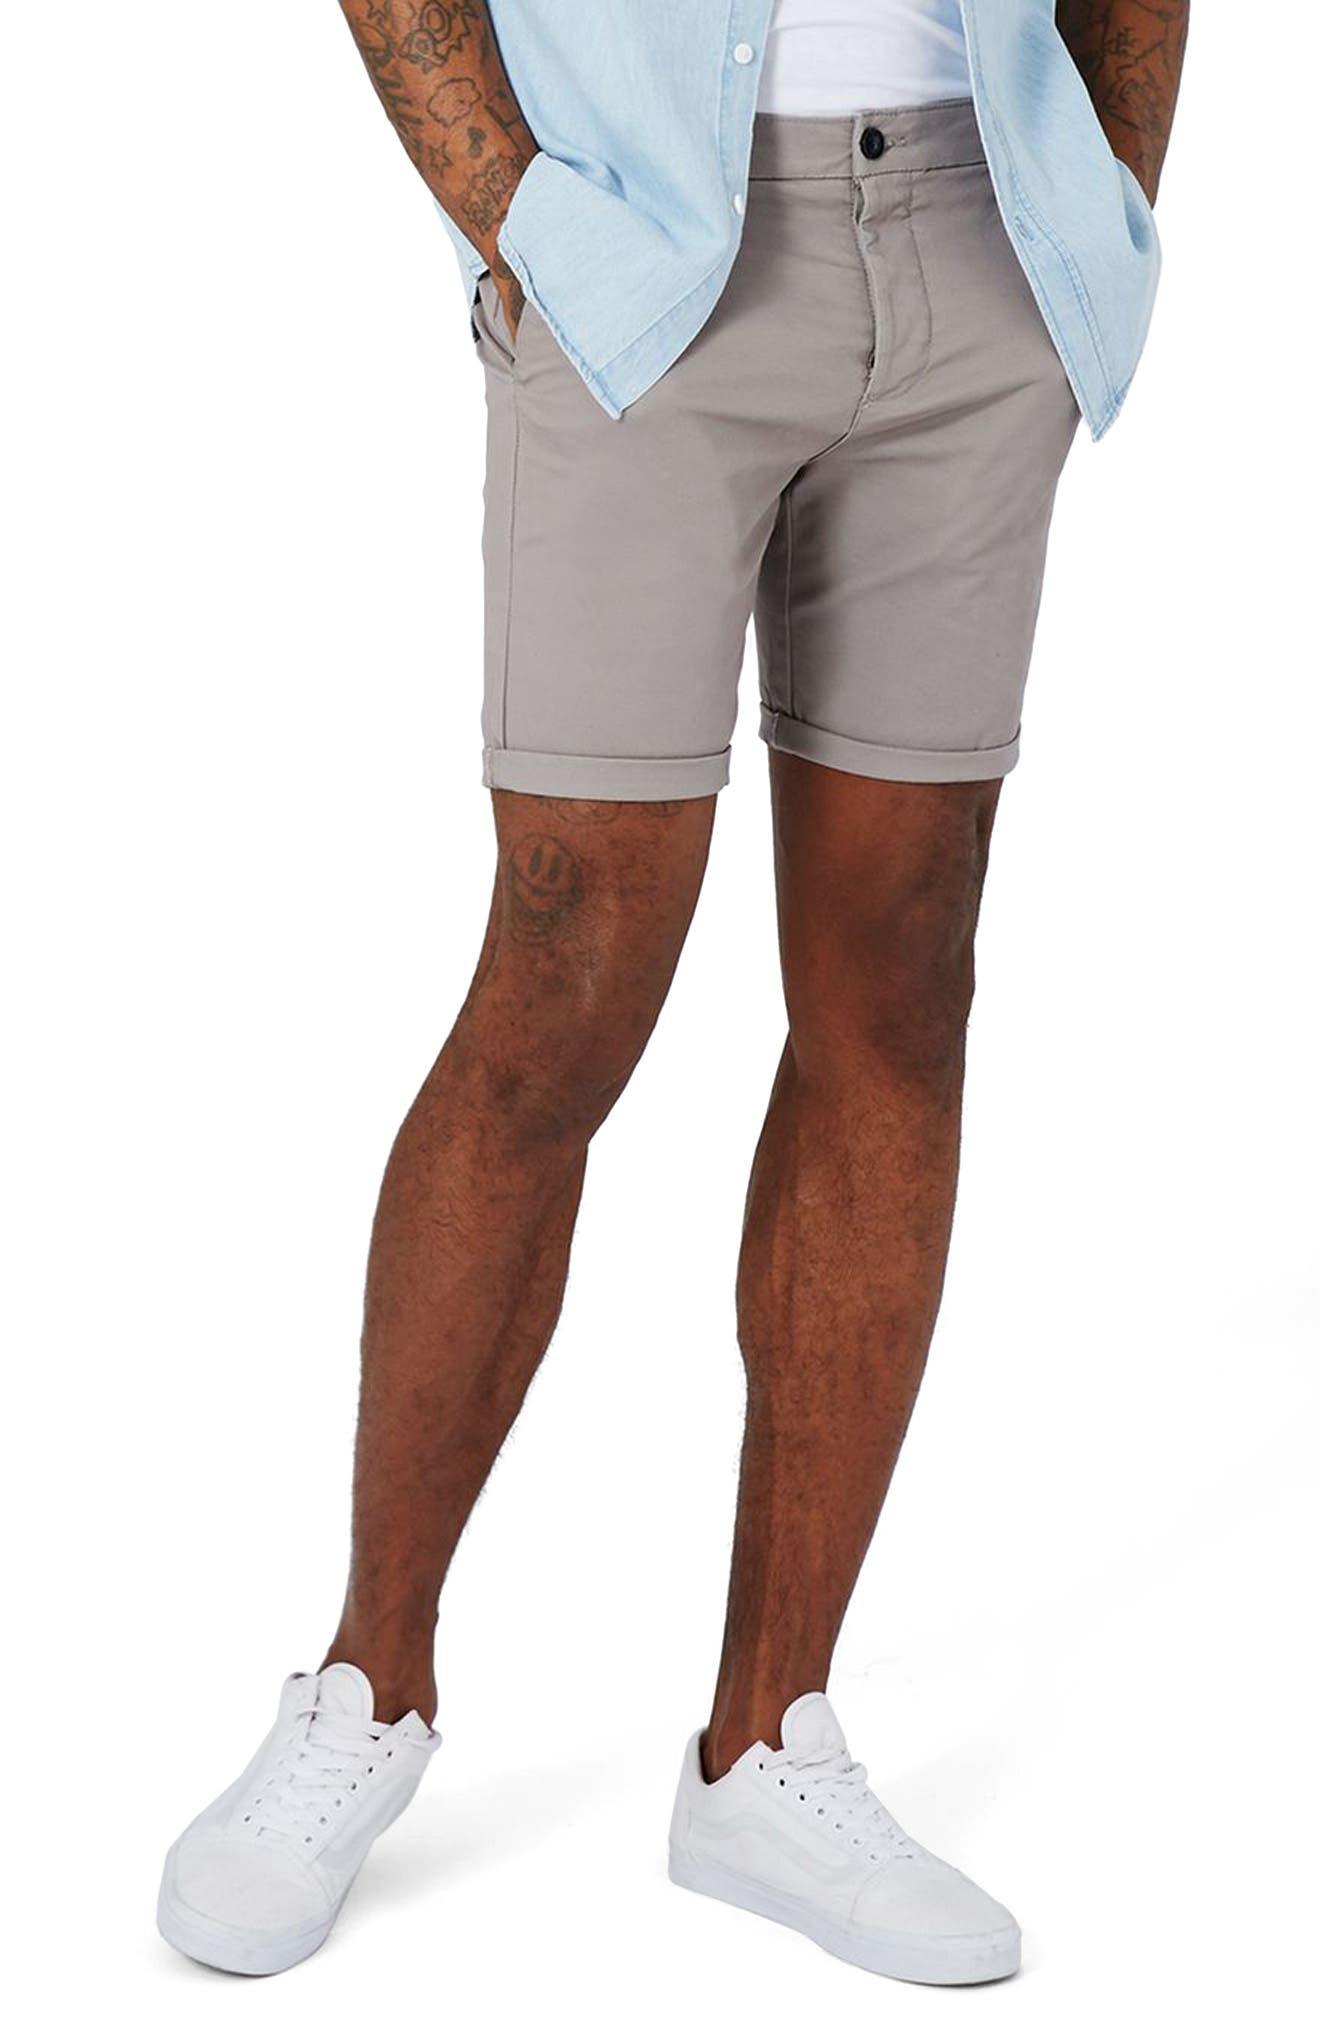 Stretch Skinny Fit Chino Shorts,                             Main thumbnail 1, color,                             030